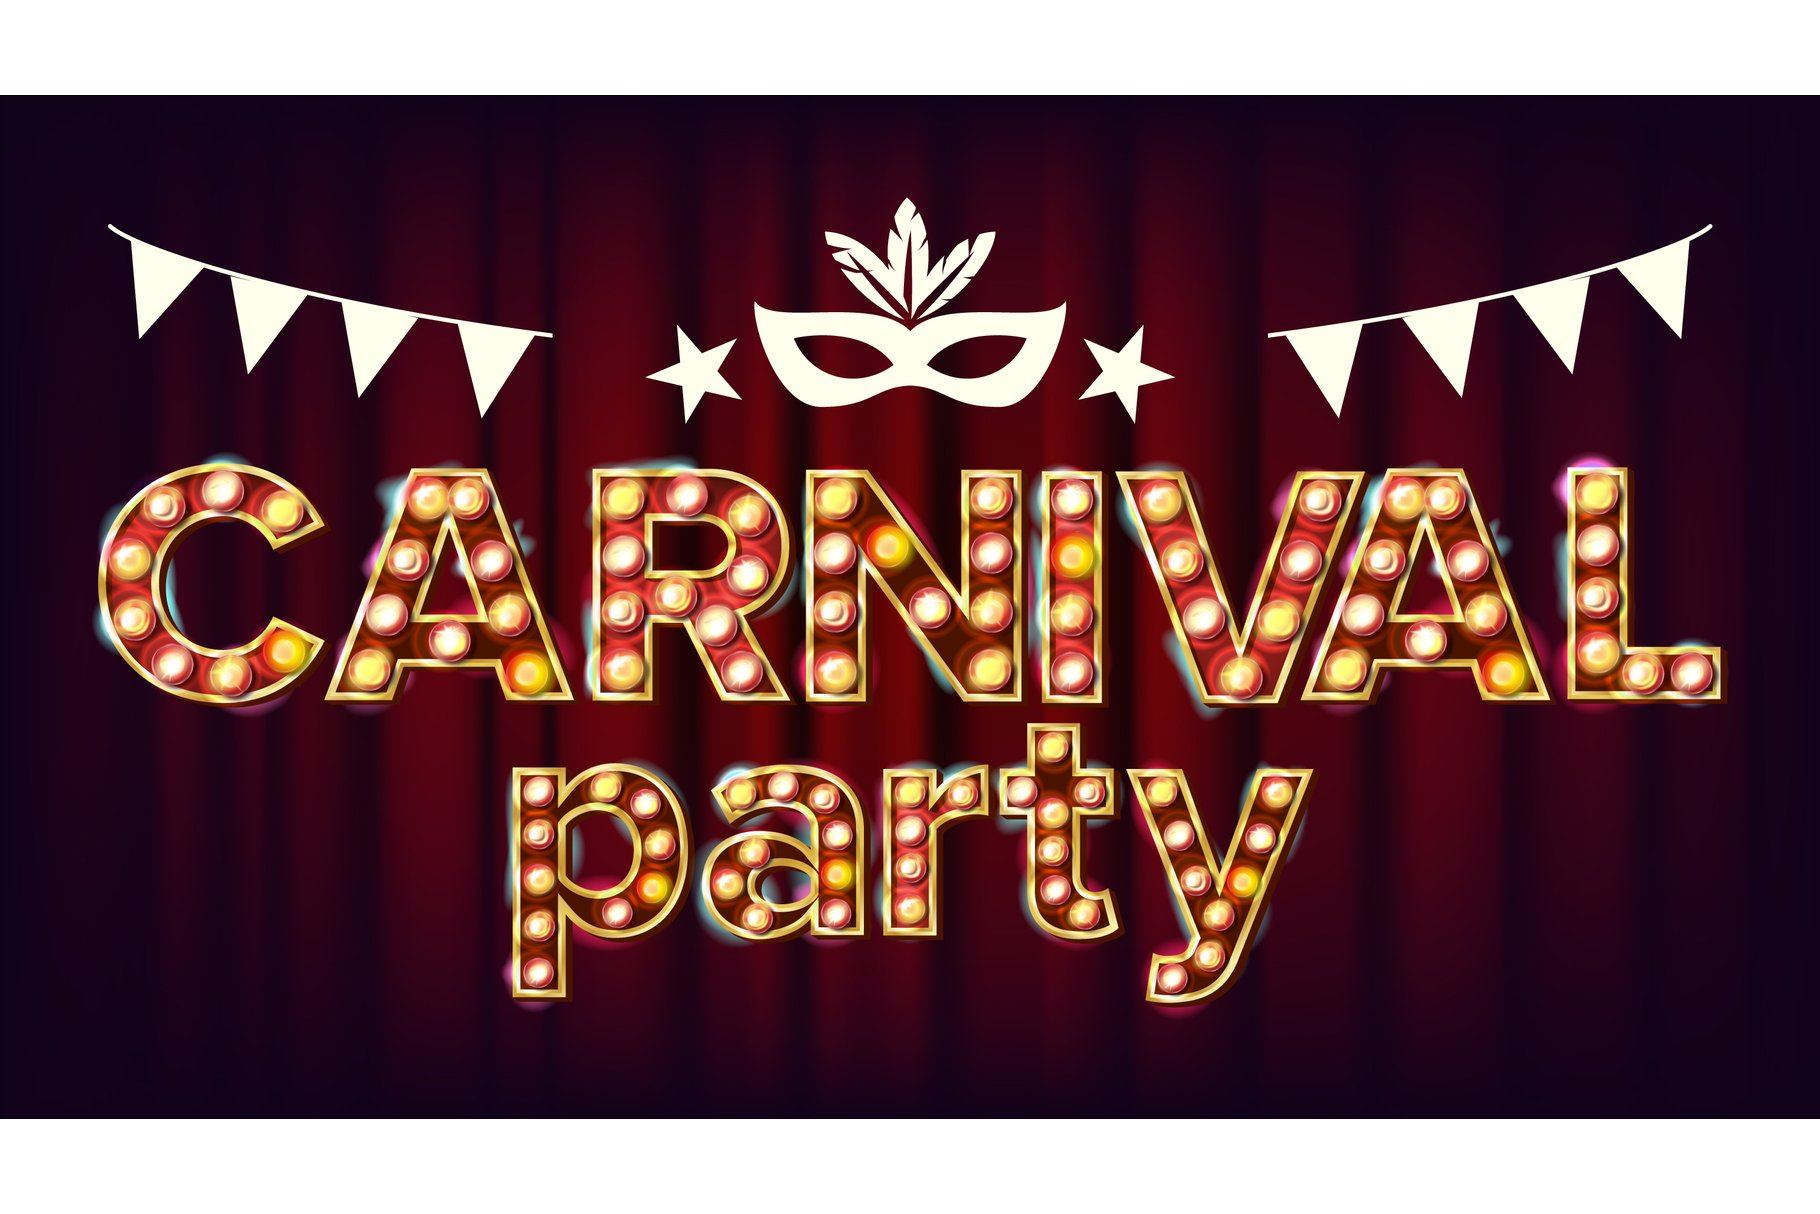 Carnival Party Poster Vector. Carnival 3D Glowing Element. example image 1